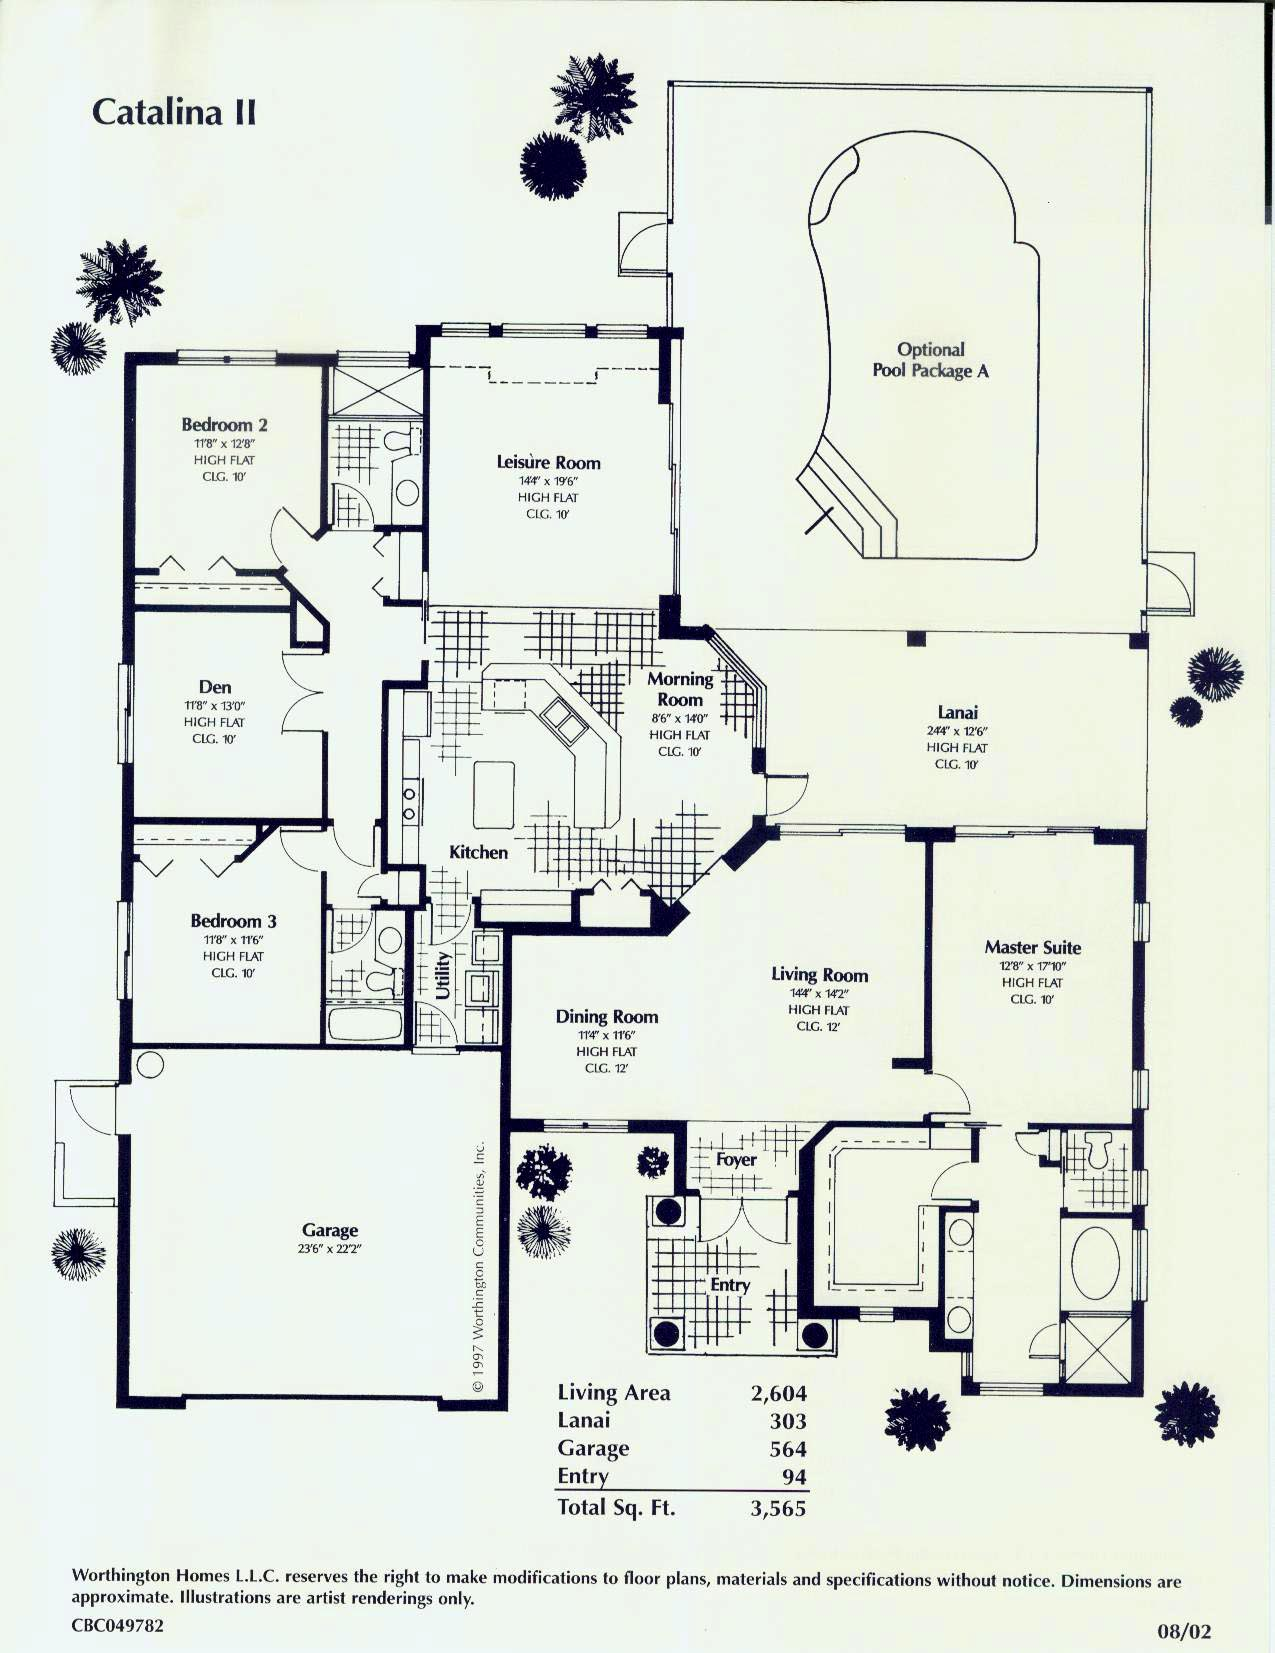 Southwest florida old florida style custom homes for Florida house designs